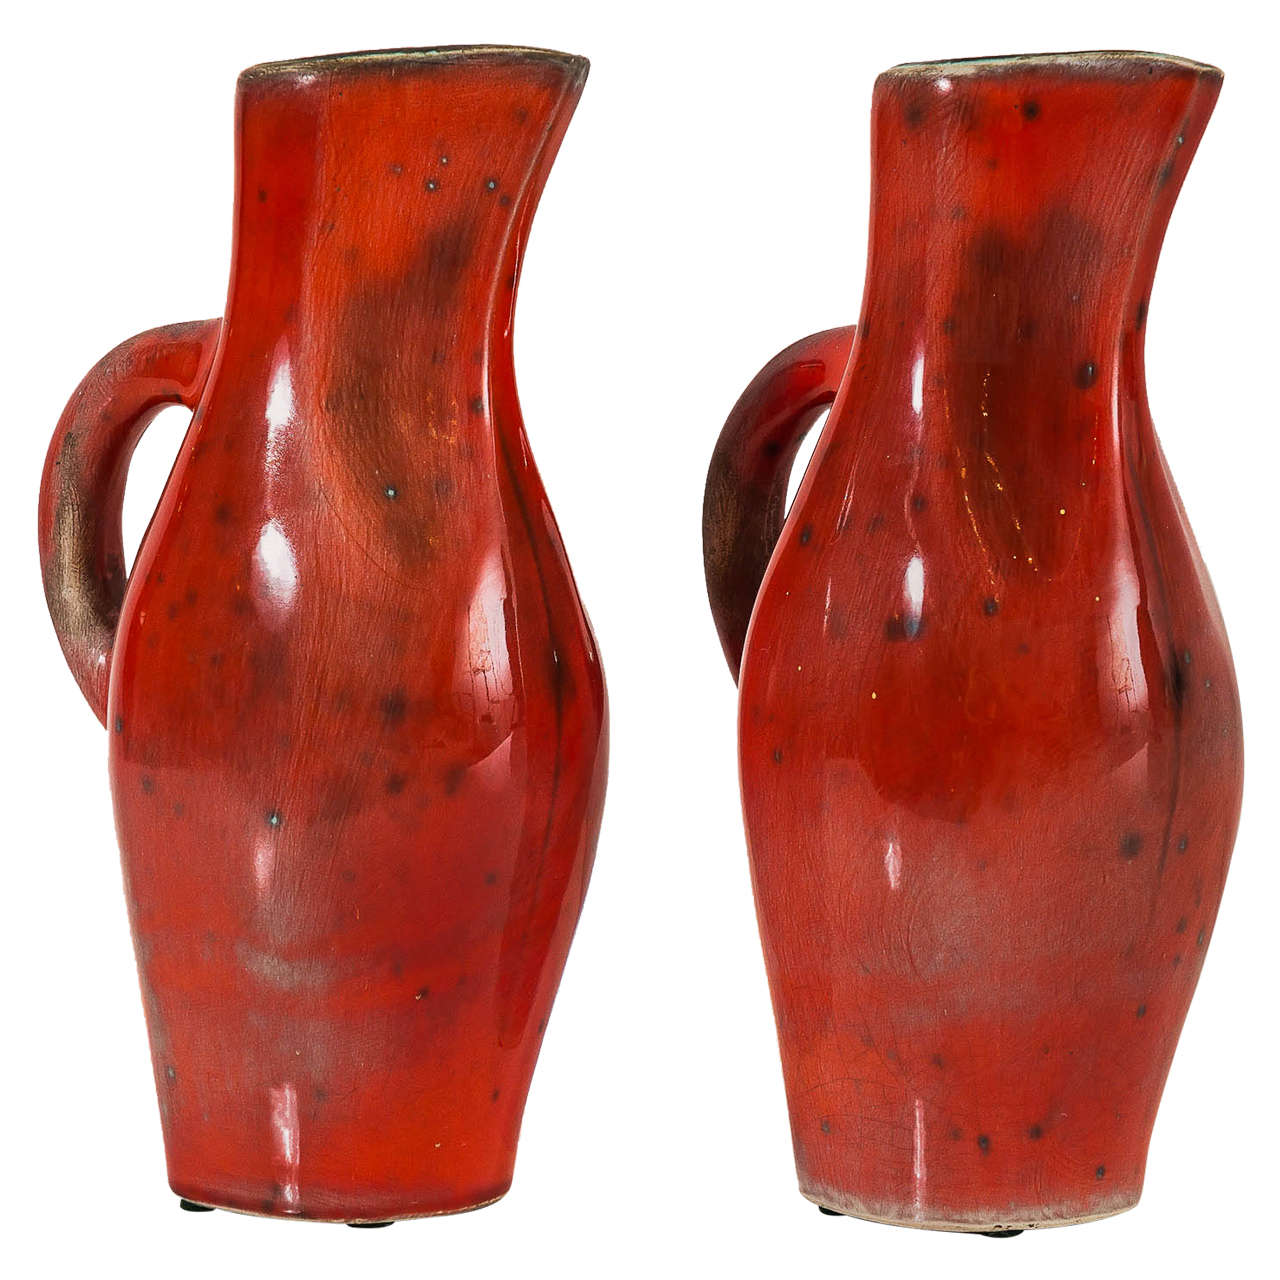 Georges JOUVE Pair Of Red Ceramic Pitchers 1